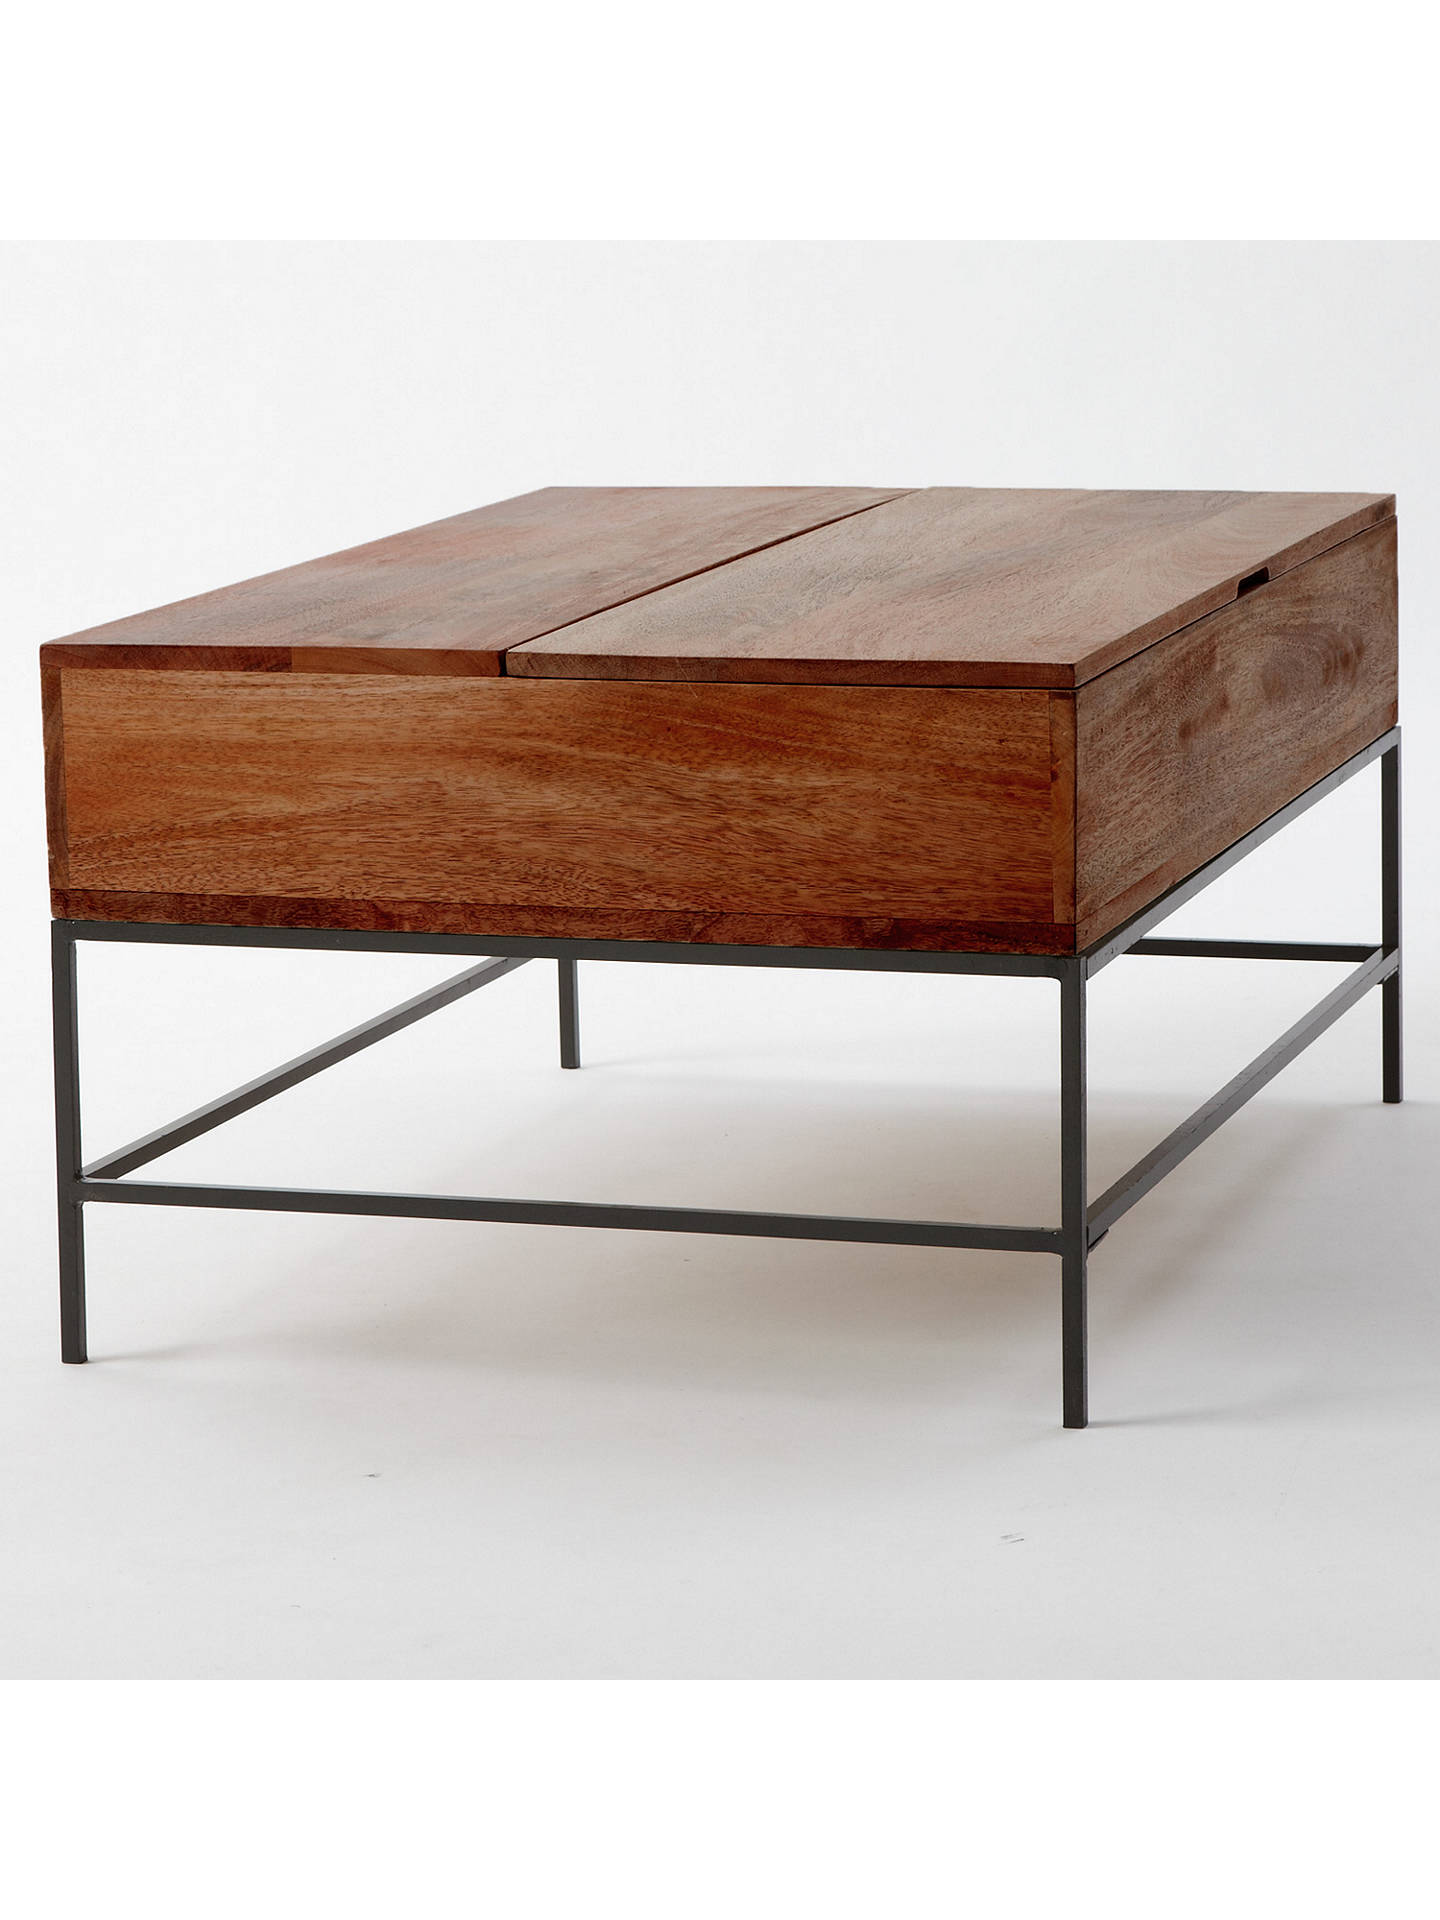 West Elm Industrial Storage Coffee Table At John Lewis Partners - West elm cafe table